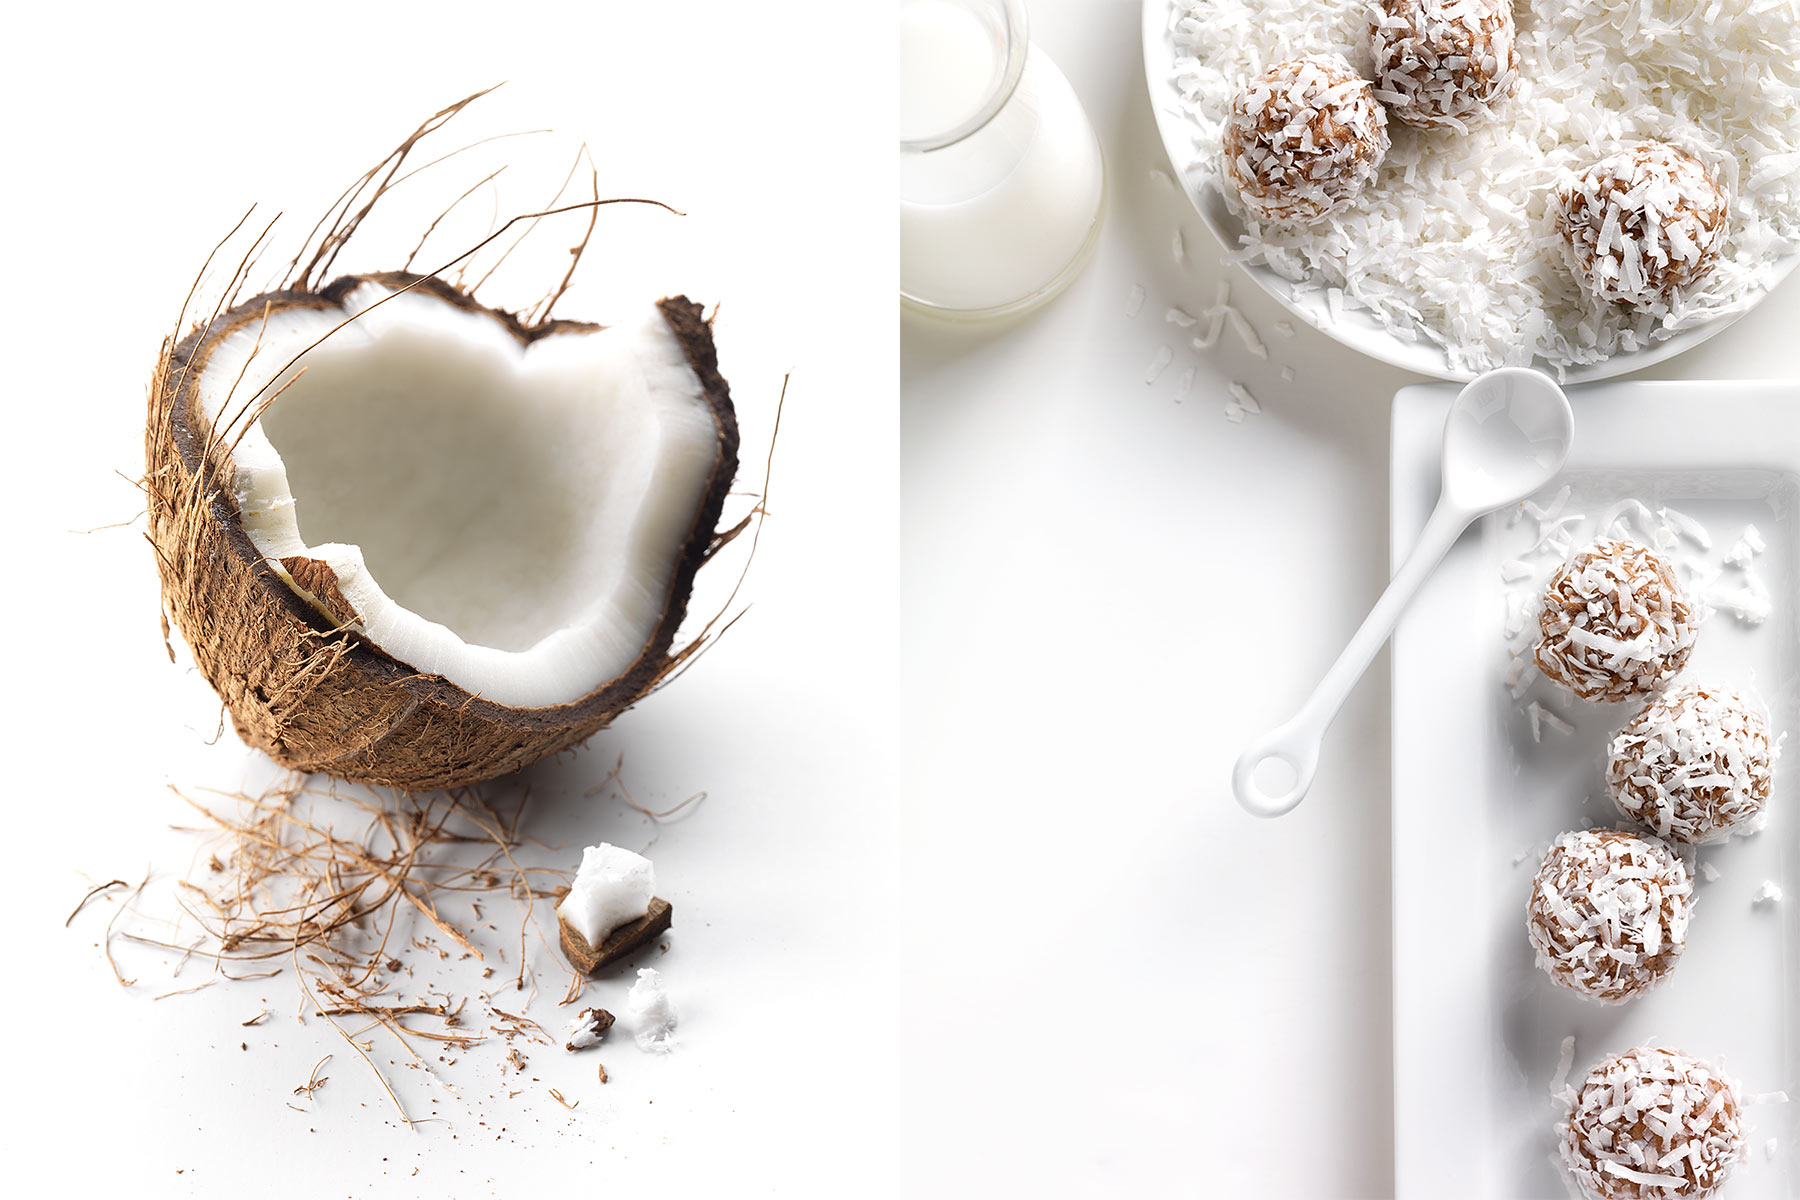 Adams-food-photography-coconut